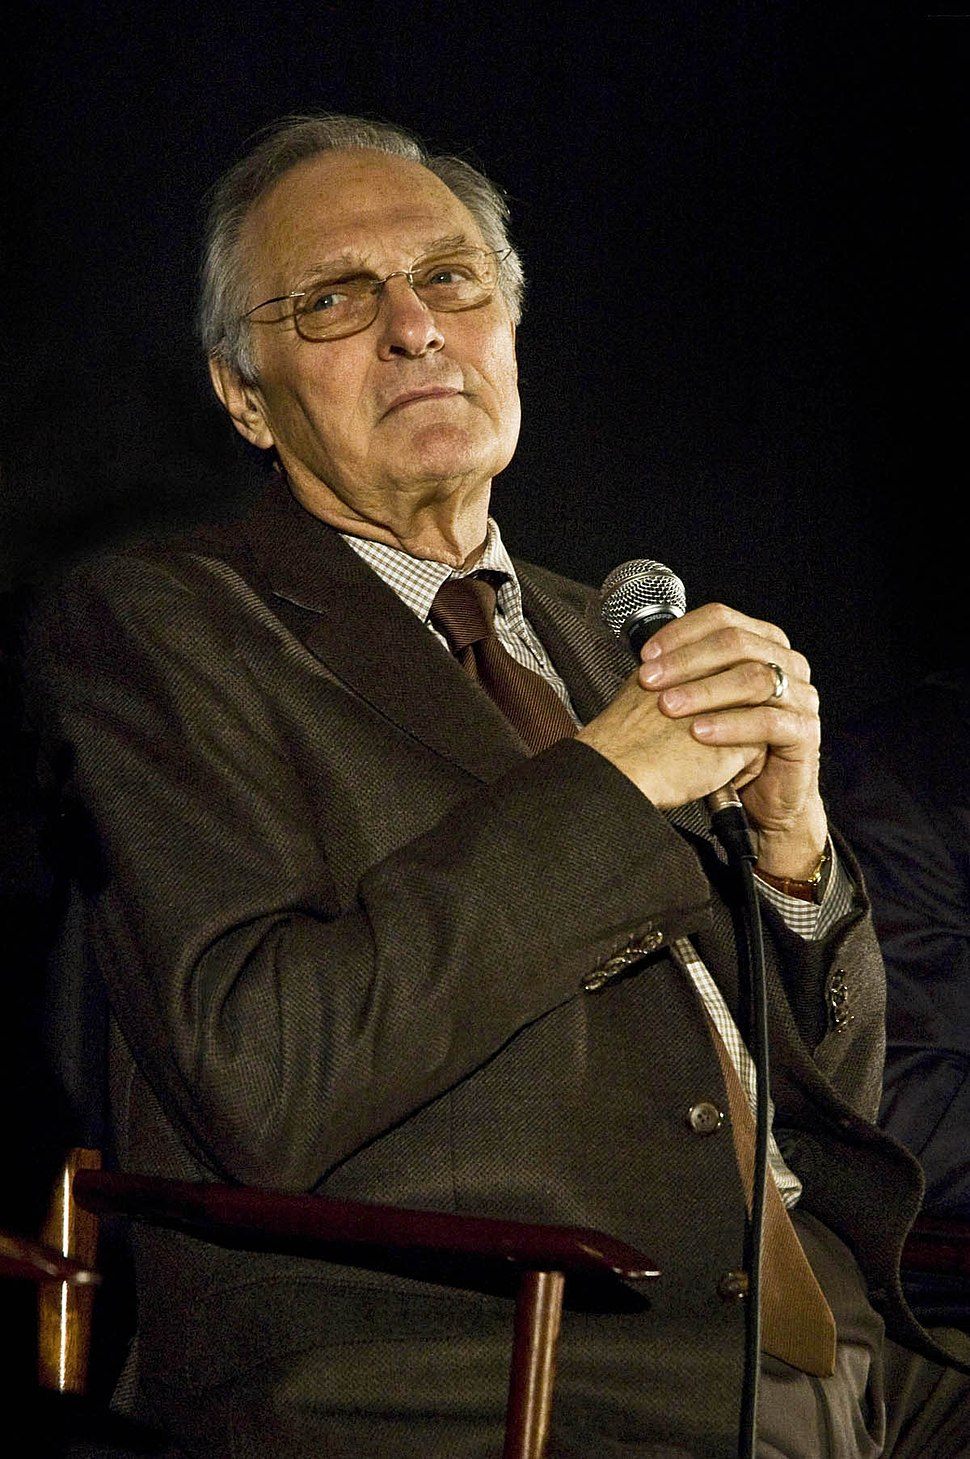 Alan Alda by Bridget Laudien